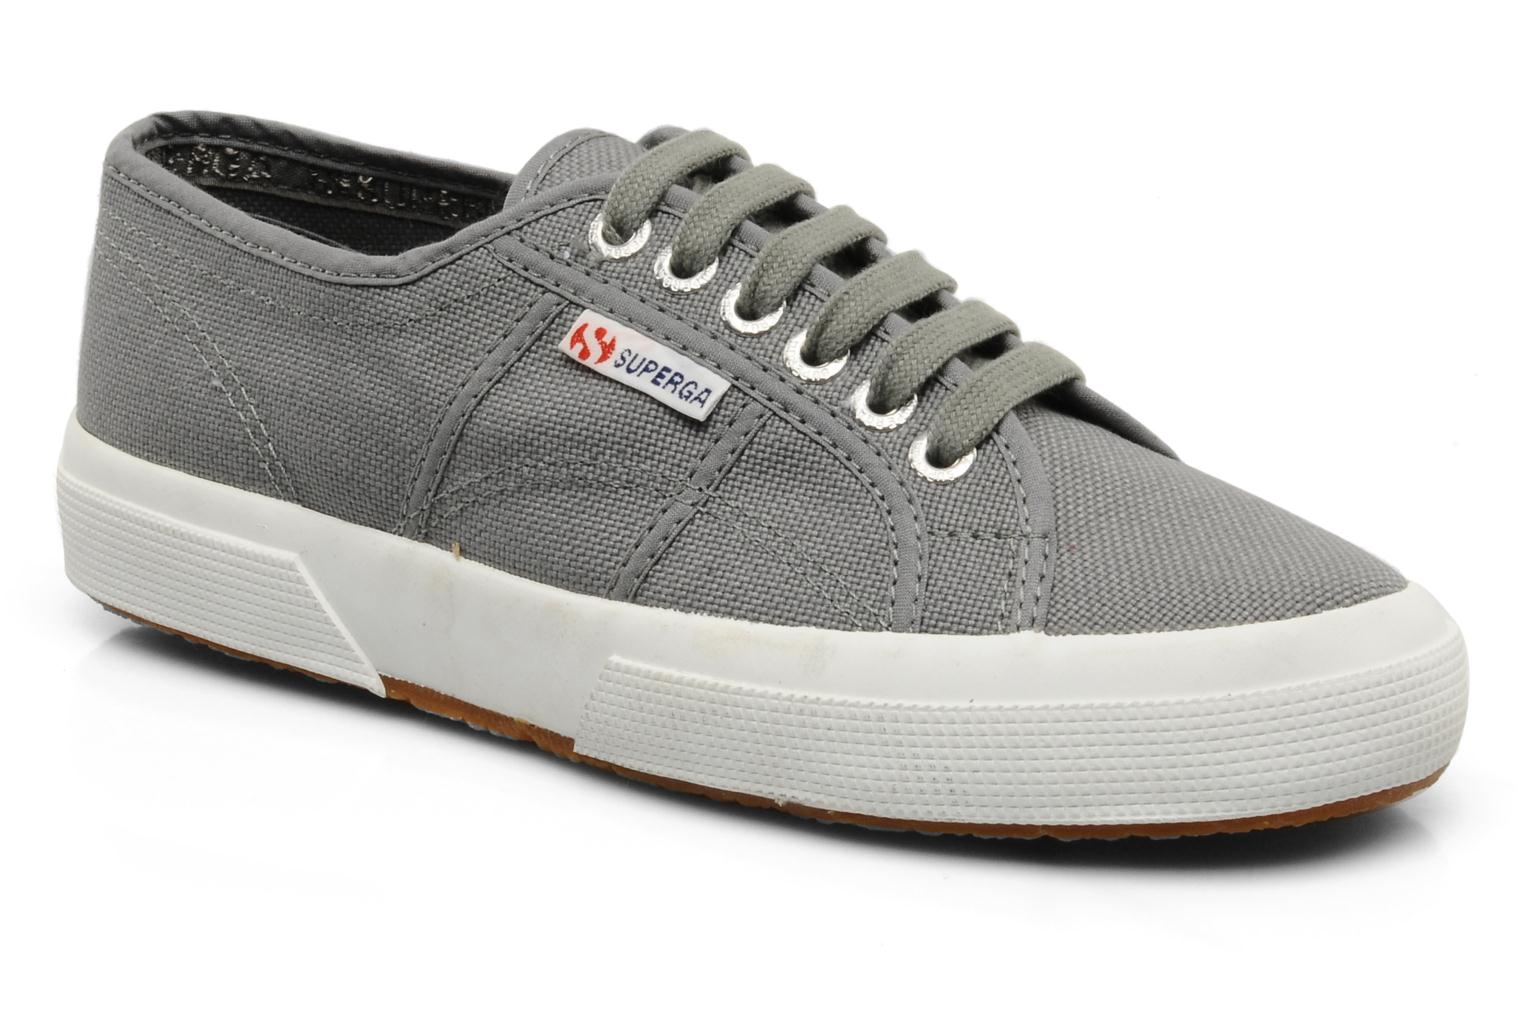 Superga 2750 Chaussures Bas-top - Gris